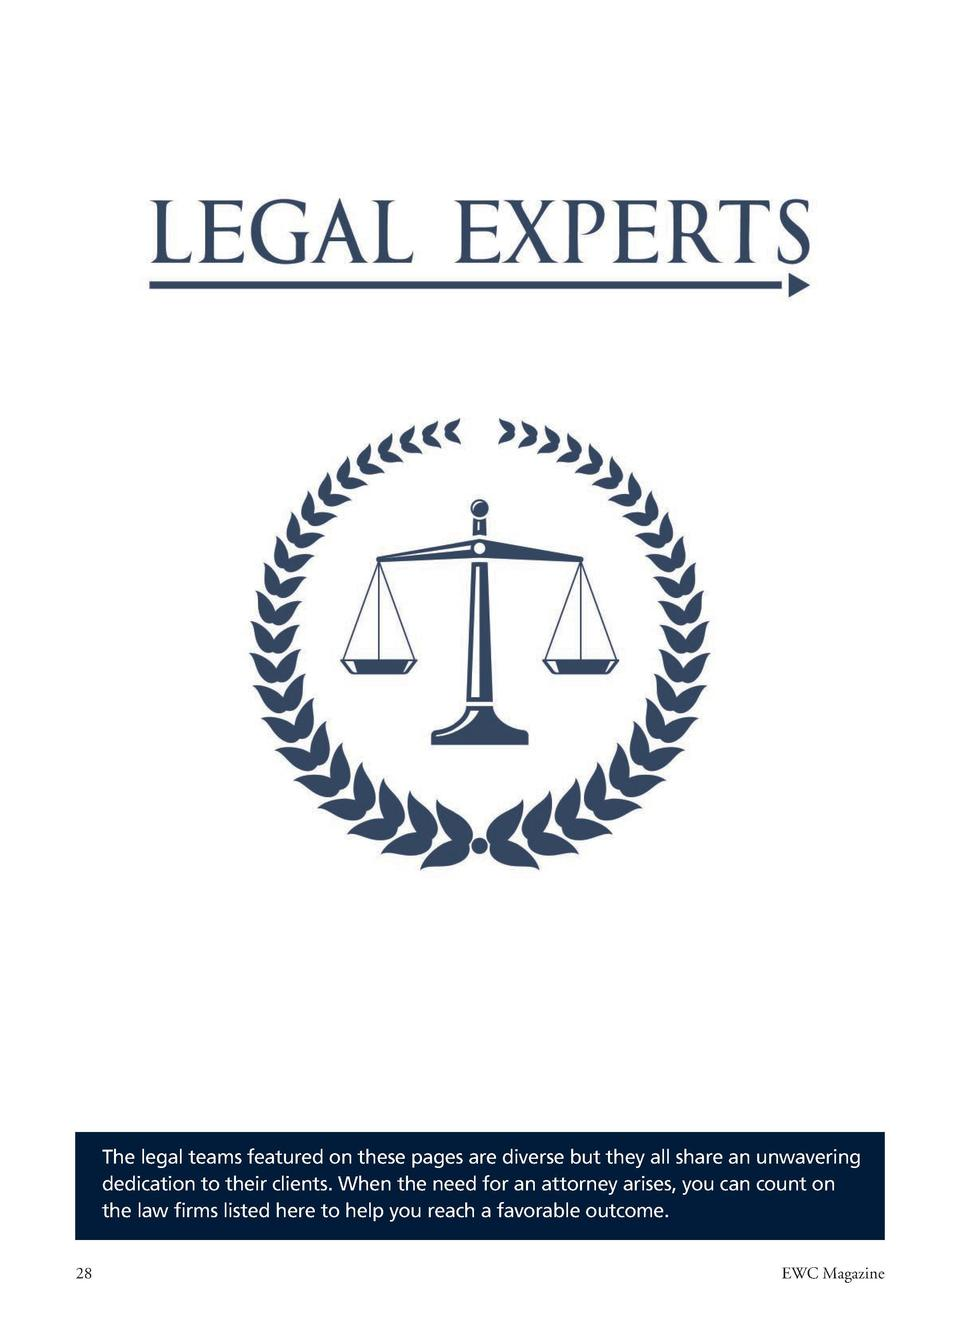 The legal teams featured on these pages are diverse but they all share an unwavering dedication to their clients. When the...